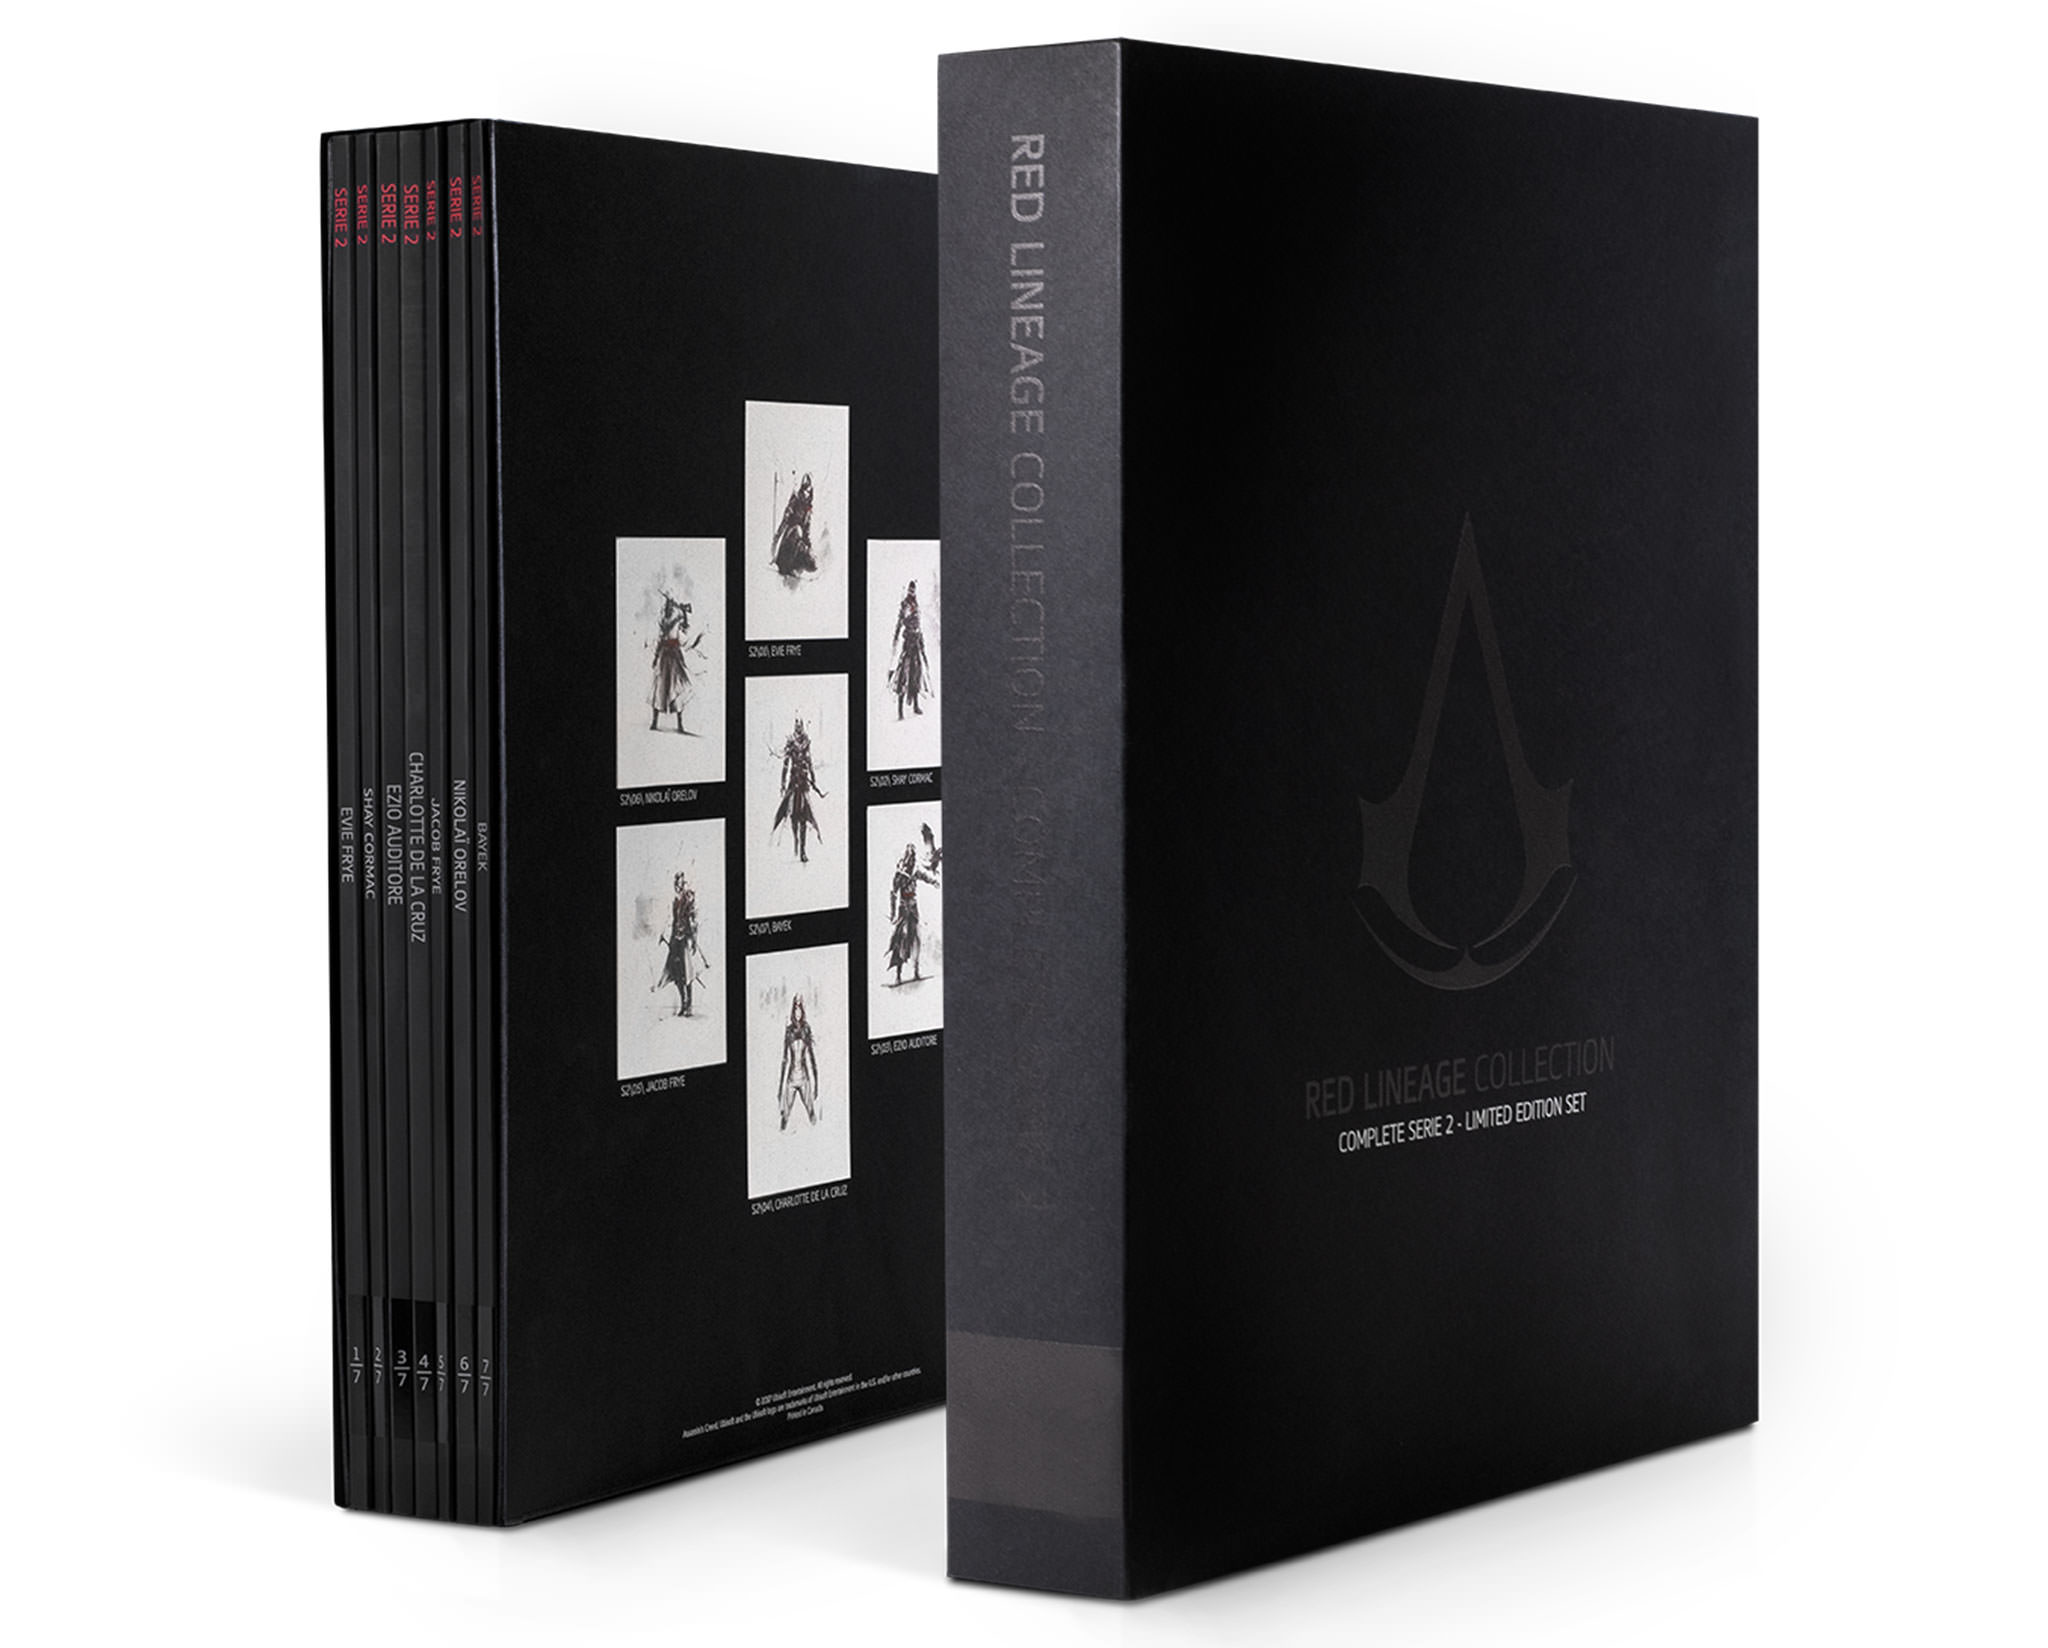 Assassin S Creed Red Lineage Complete Collection Series 2